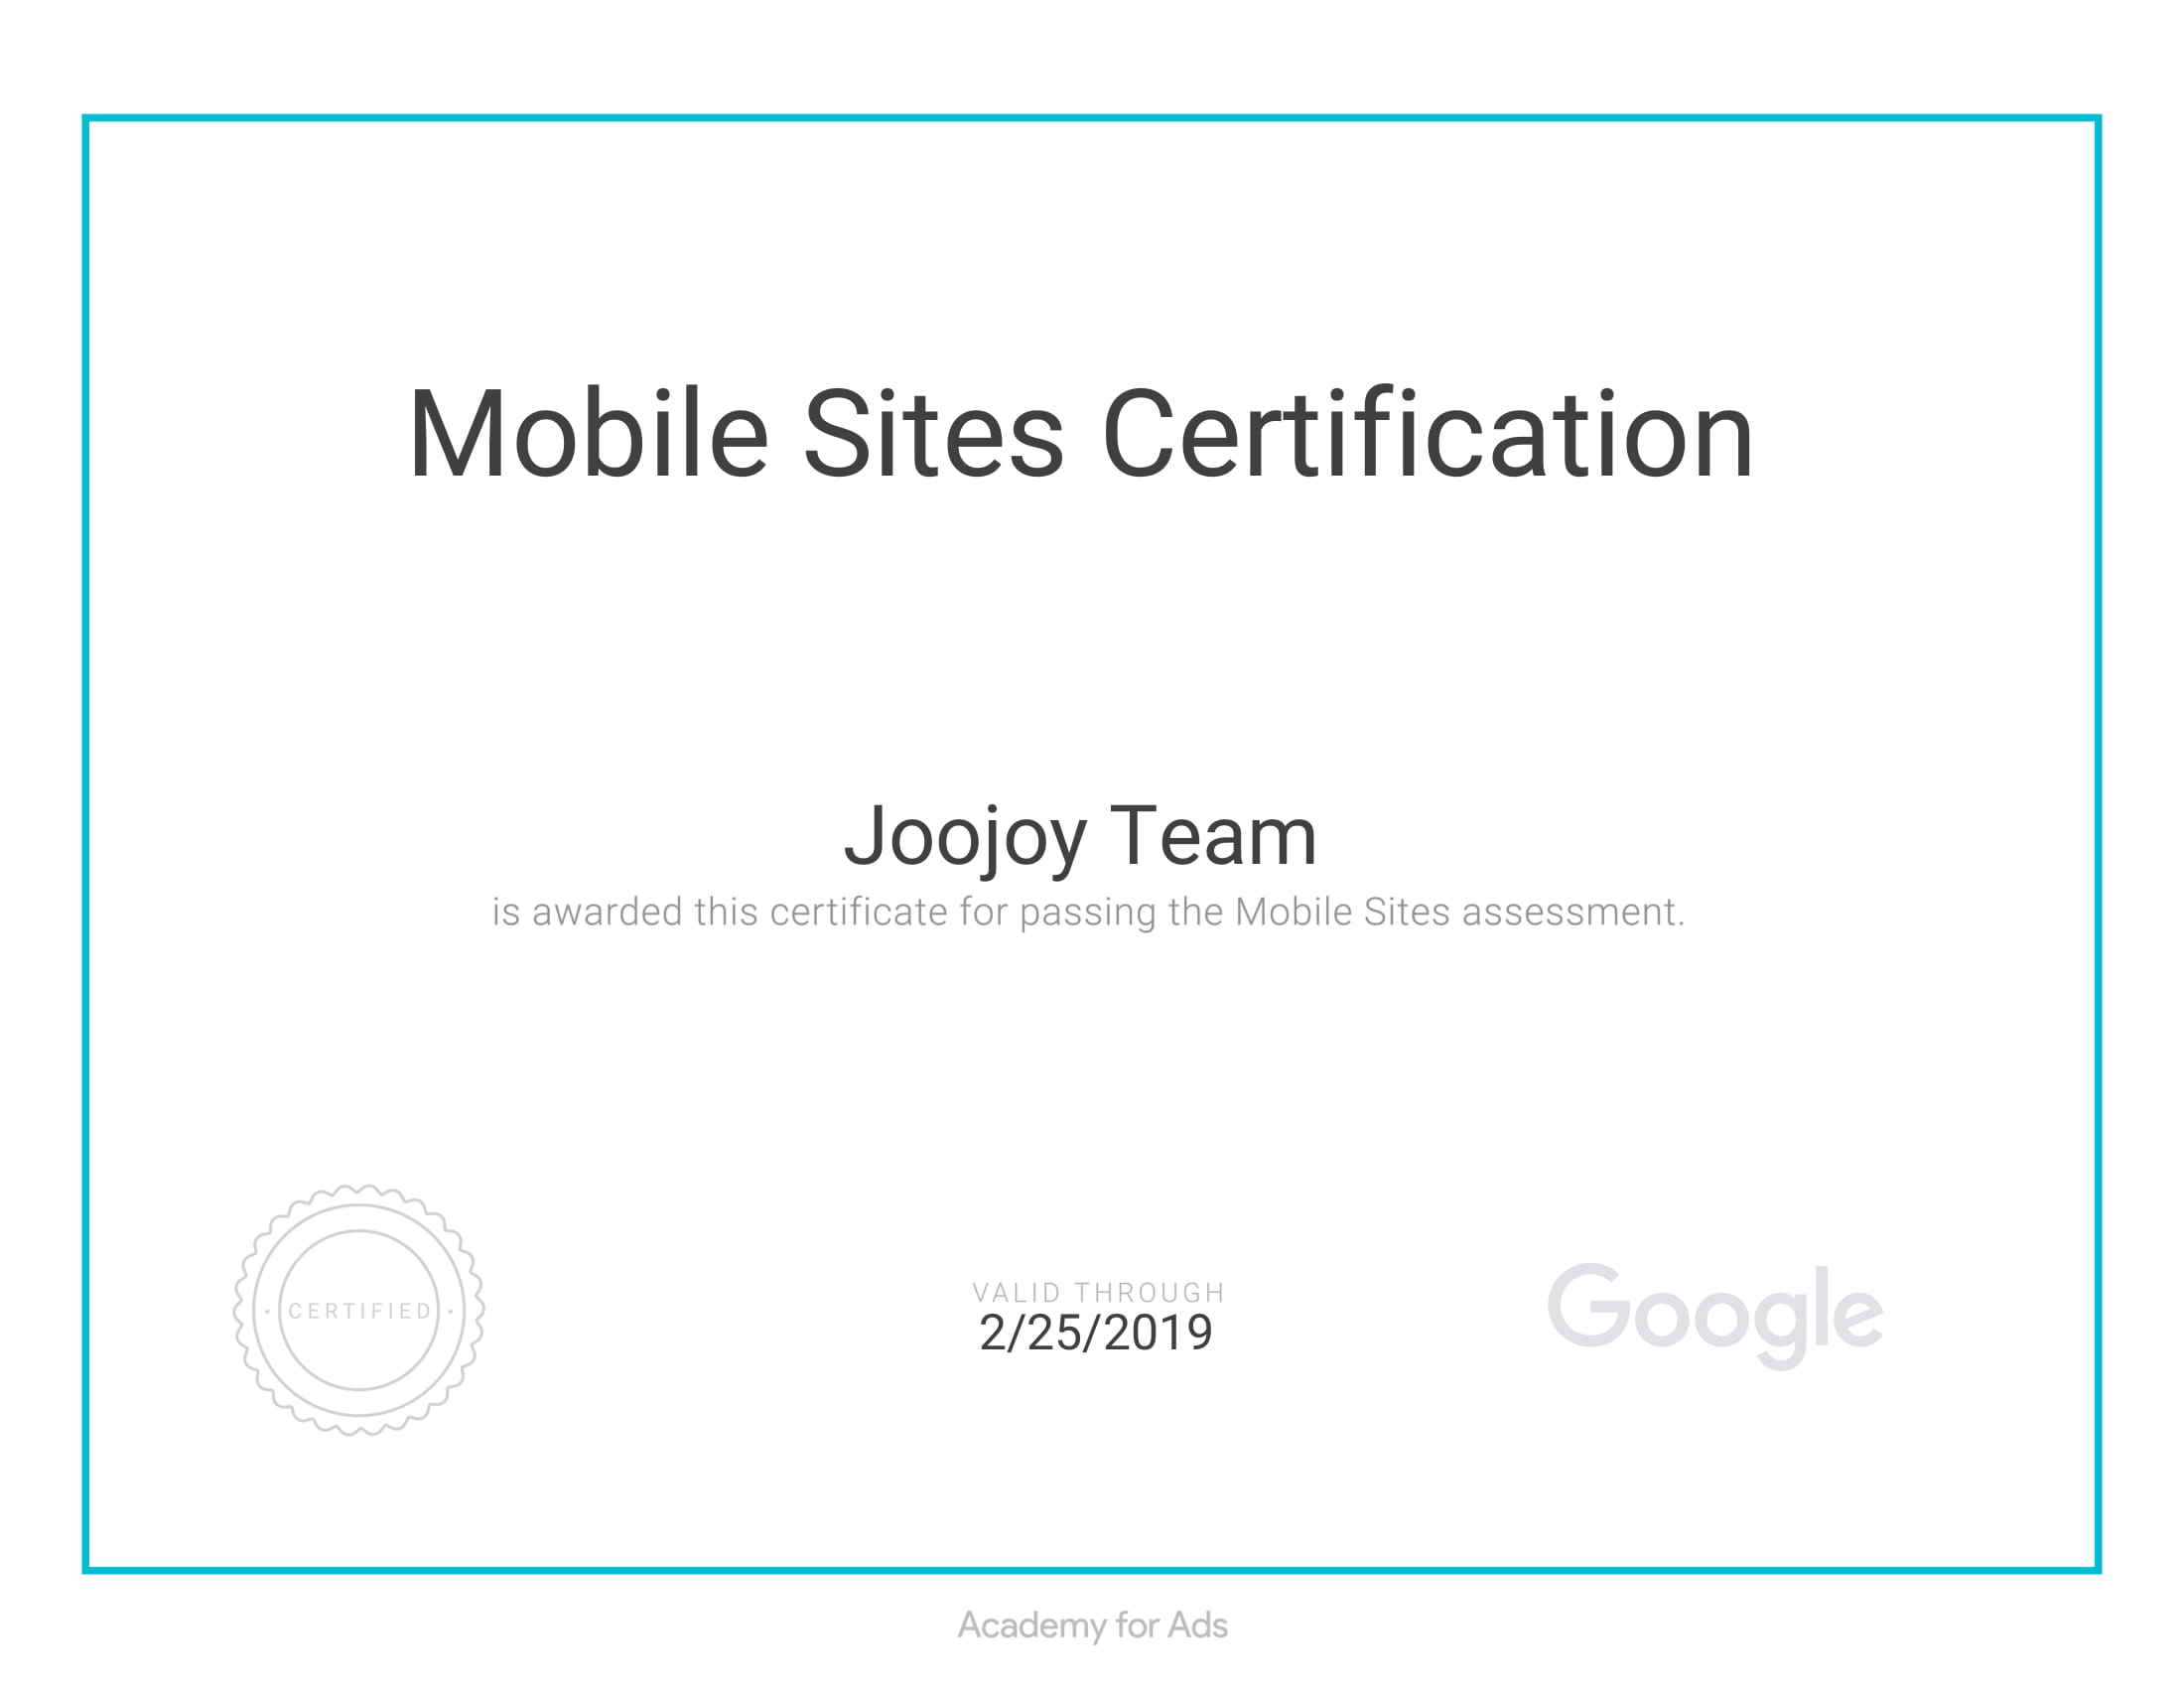 mobile sites certificate